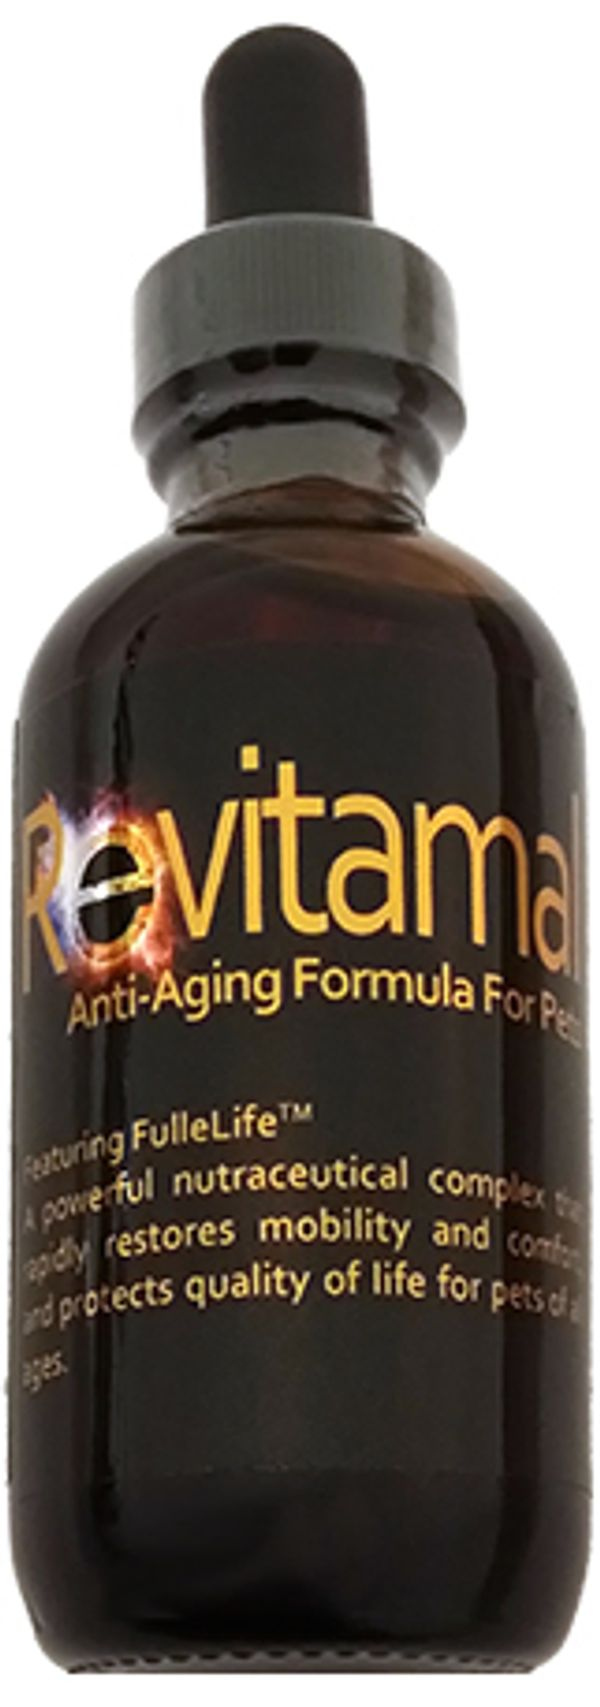 Our breakthrough formula delivers a quantum leap in cellular anti-aging science.